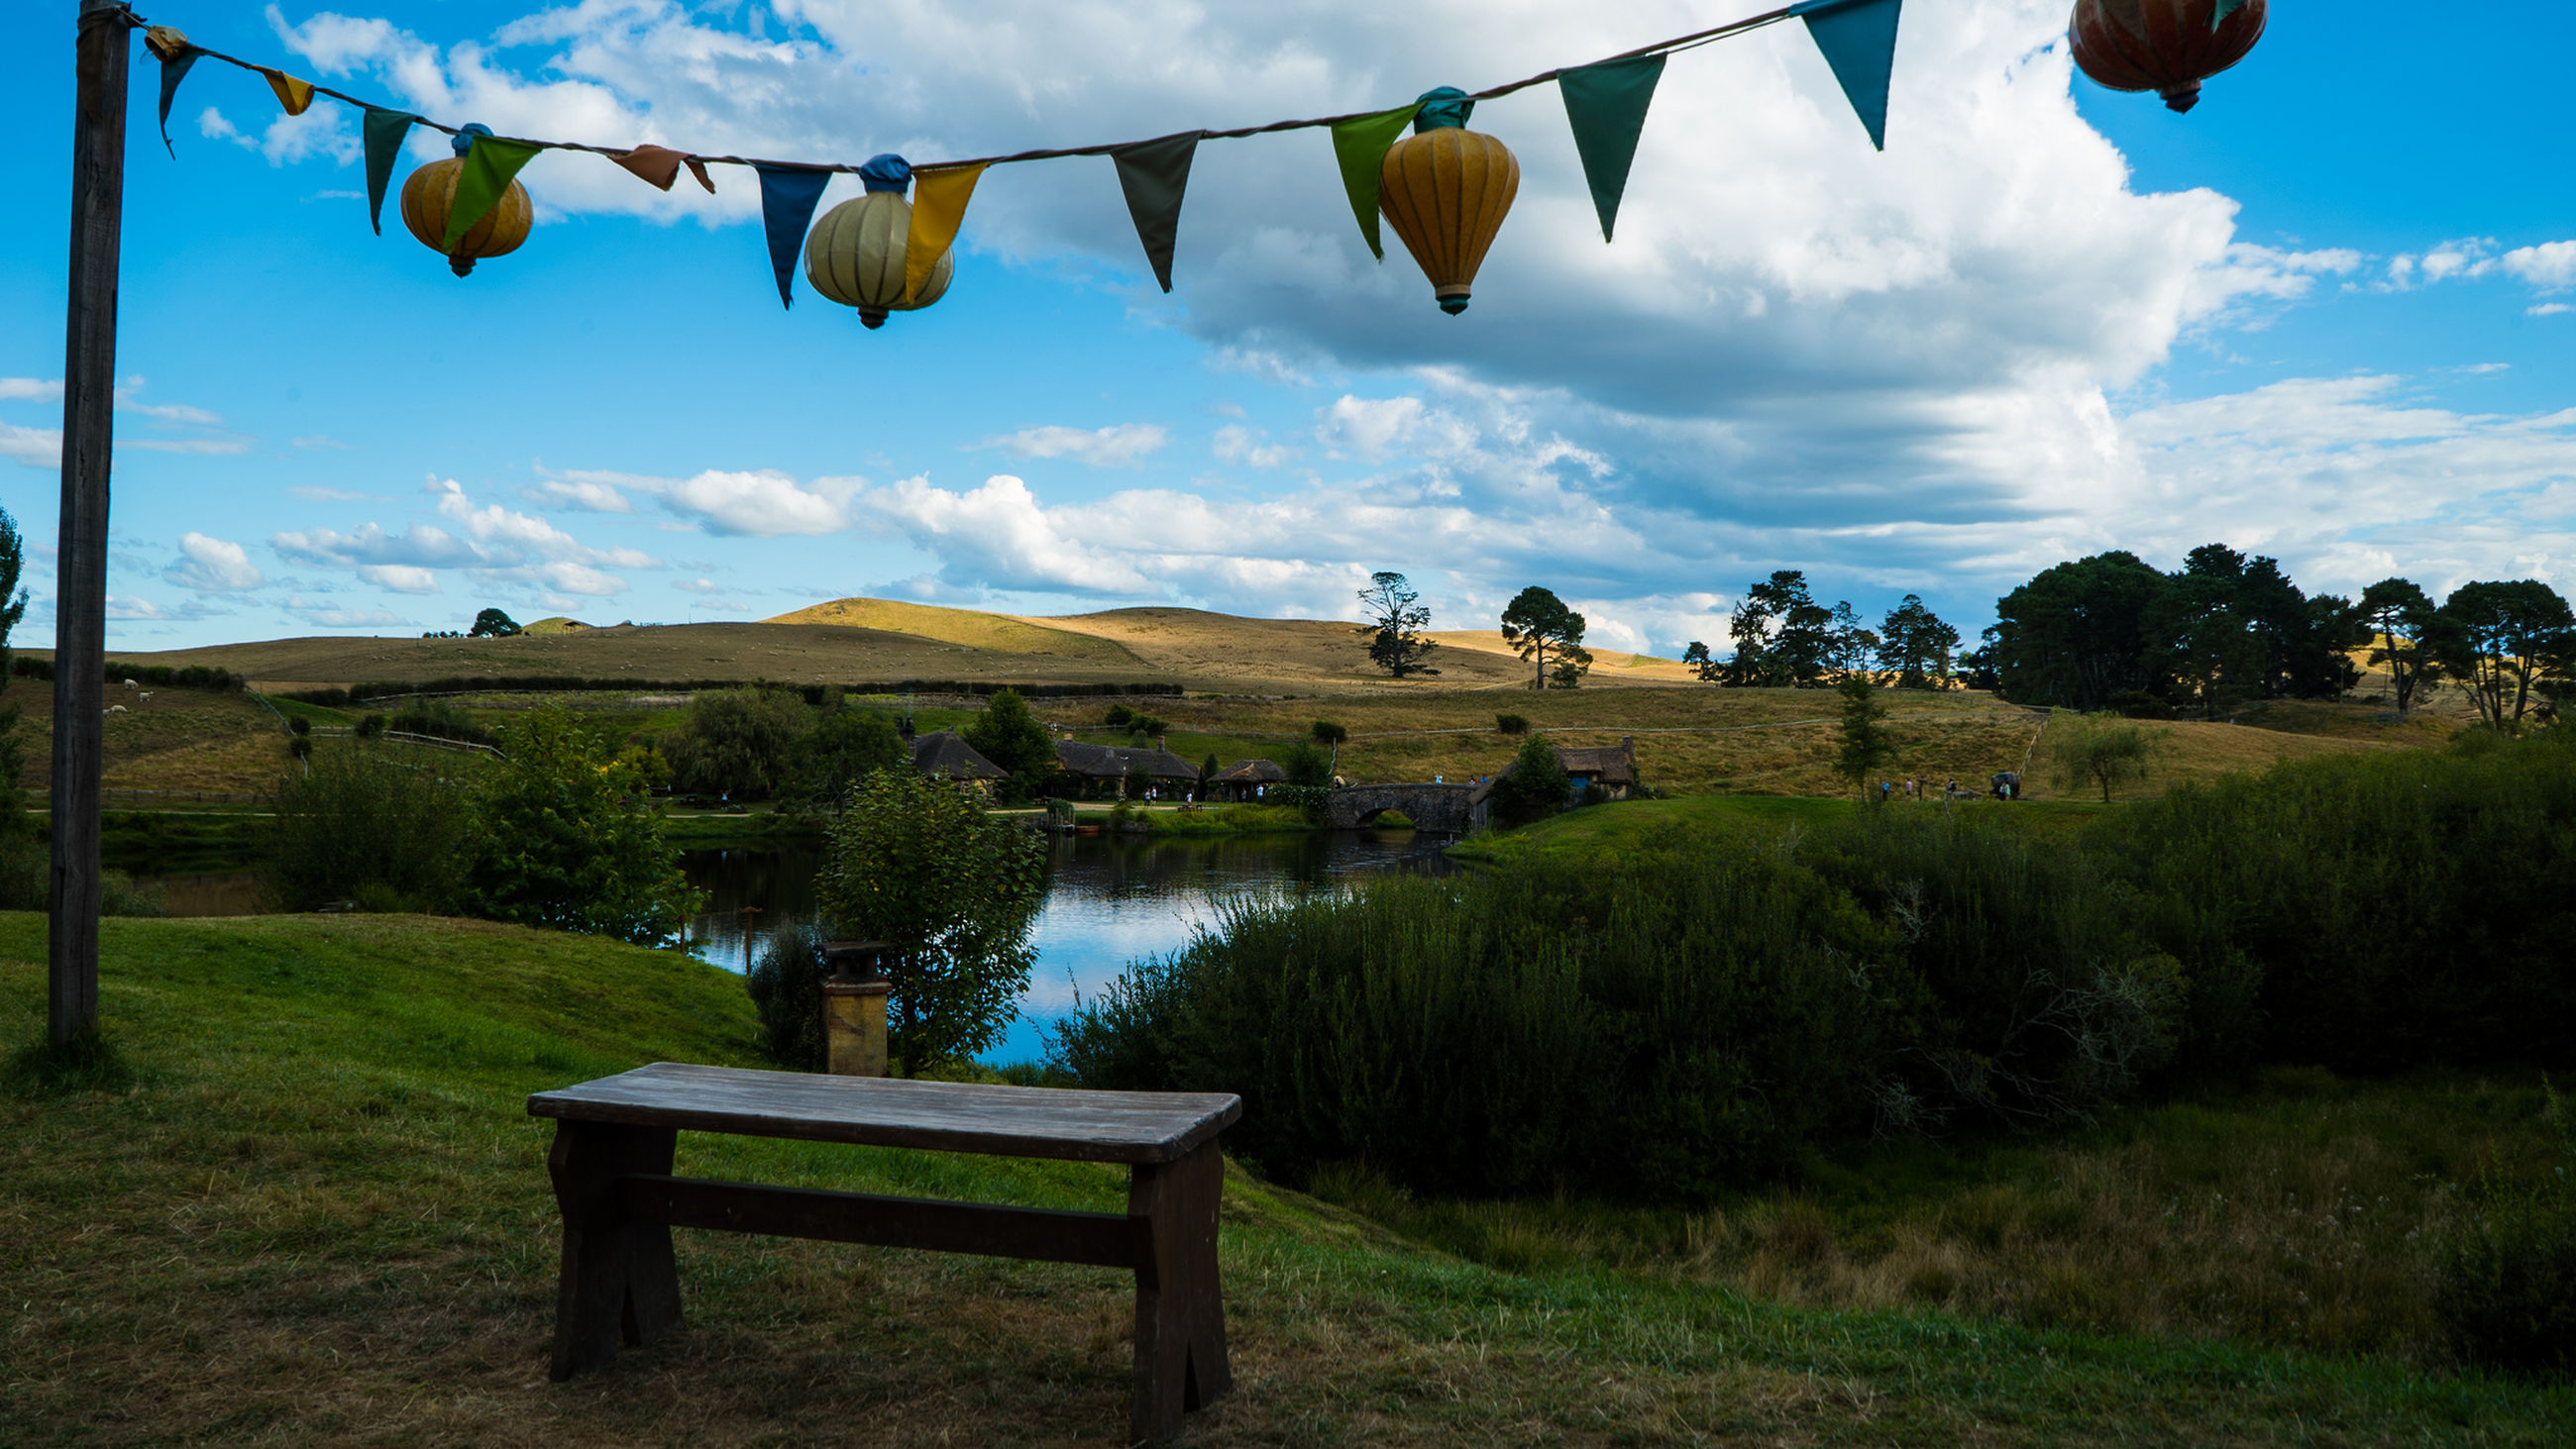 Bunting hanging over empty seat by lake against sky